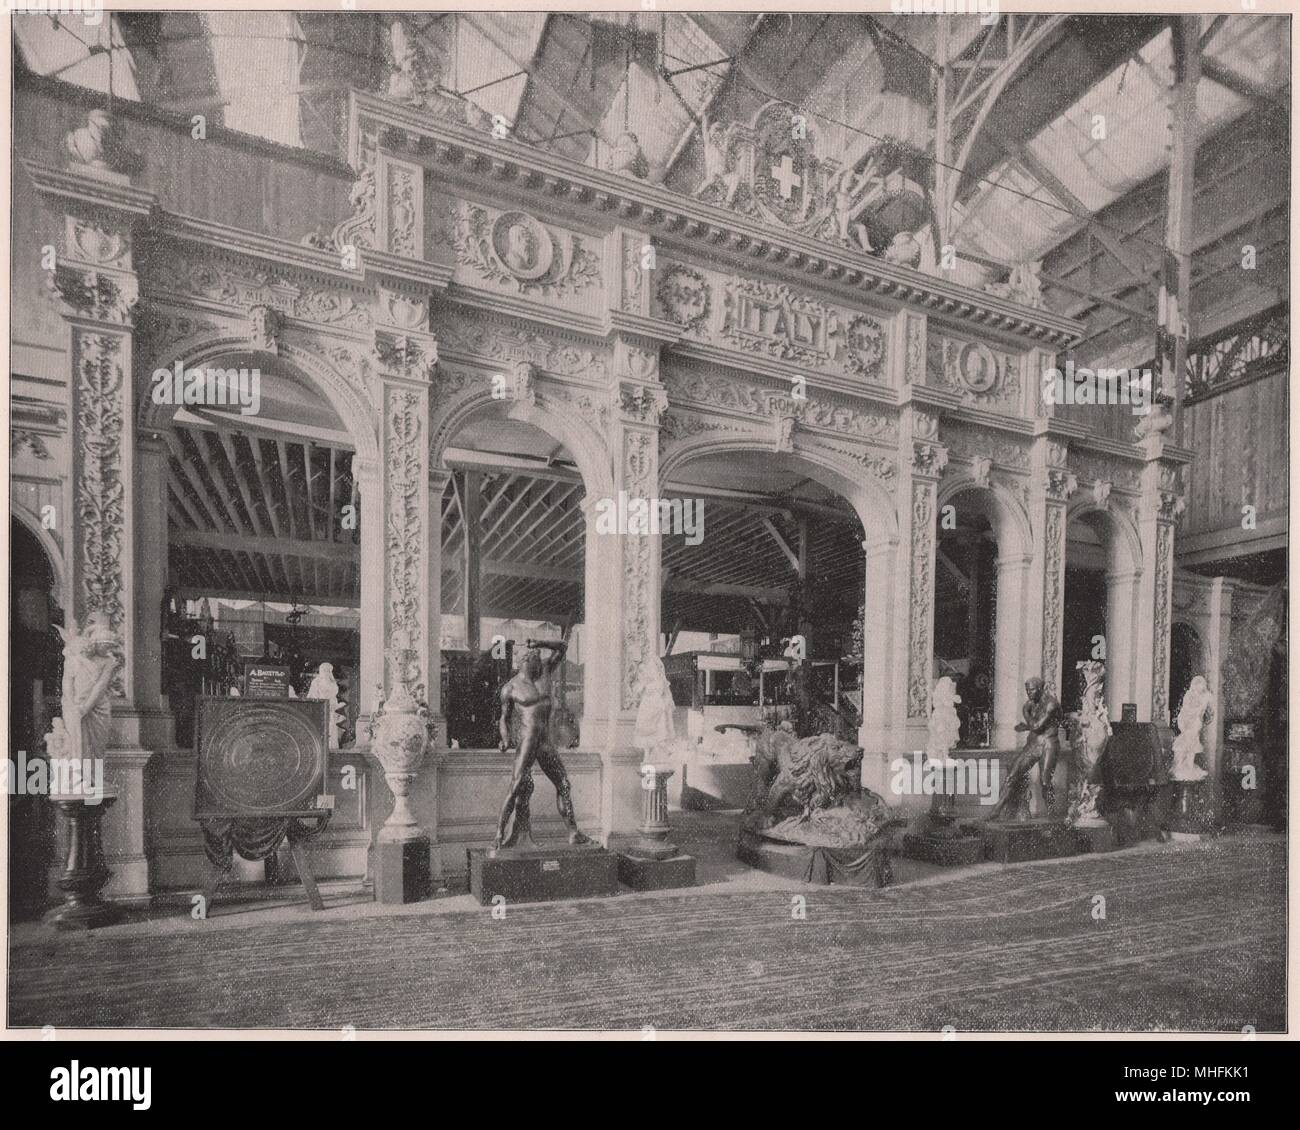 Italy's Dainty Display - Just within the main south portal of the Manufactures Building, on the left side of Columbia avenue, i… - Stock Image